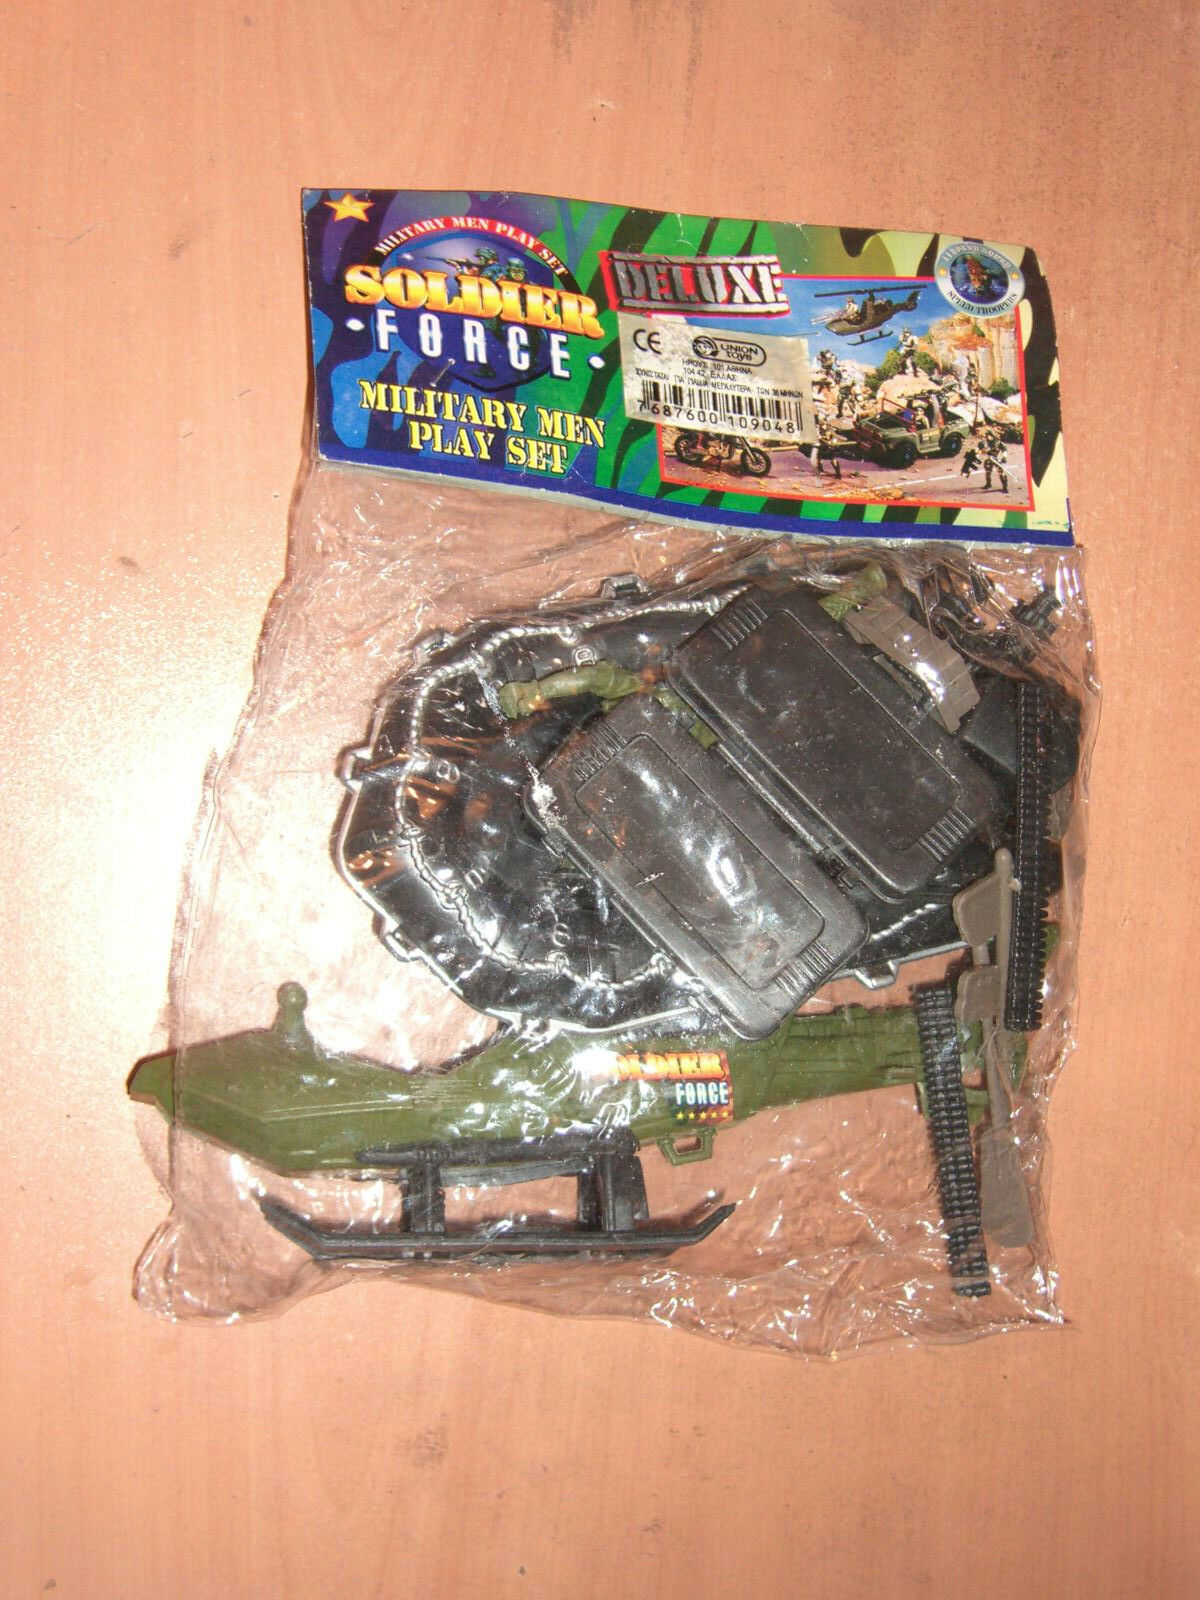 90'S VINTAGE G.I. G.I. G.I. GI Joe KO FANG NIGHT LANDING SOLDIER FORCE ACTION FIGURE MIB 497bec